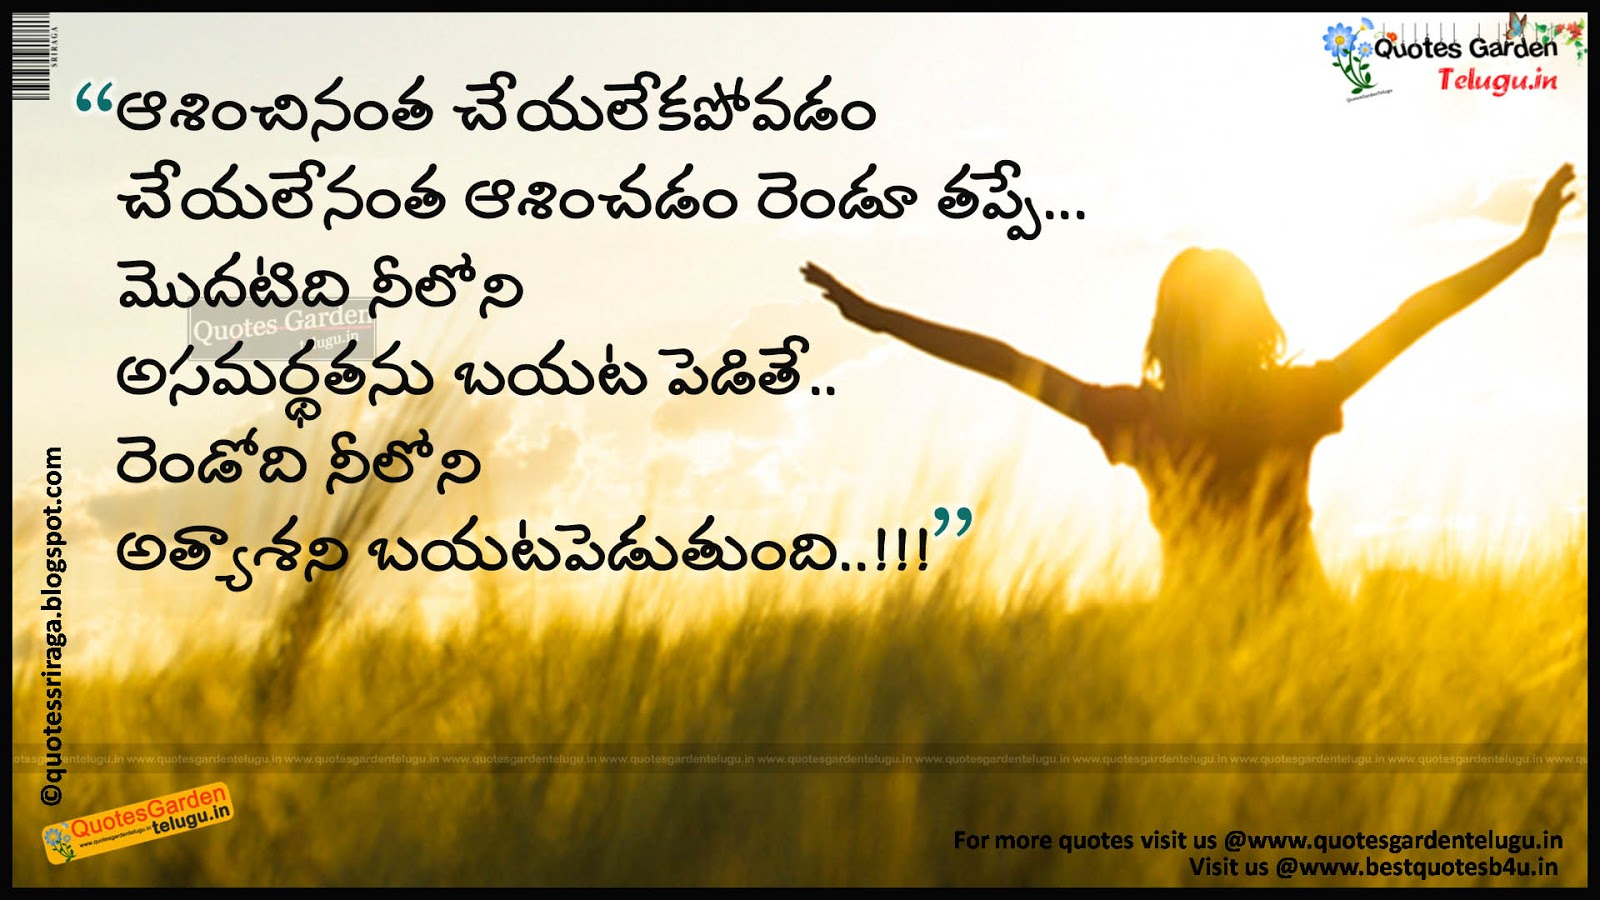 Good Morning Images With Quotes In Telugu Hd Kopermimarlik